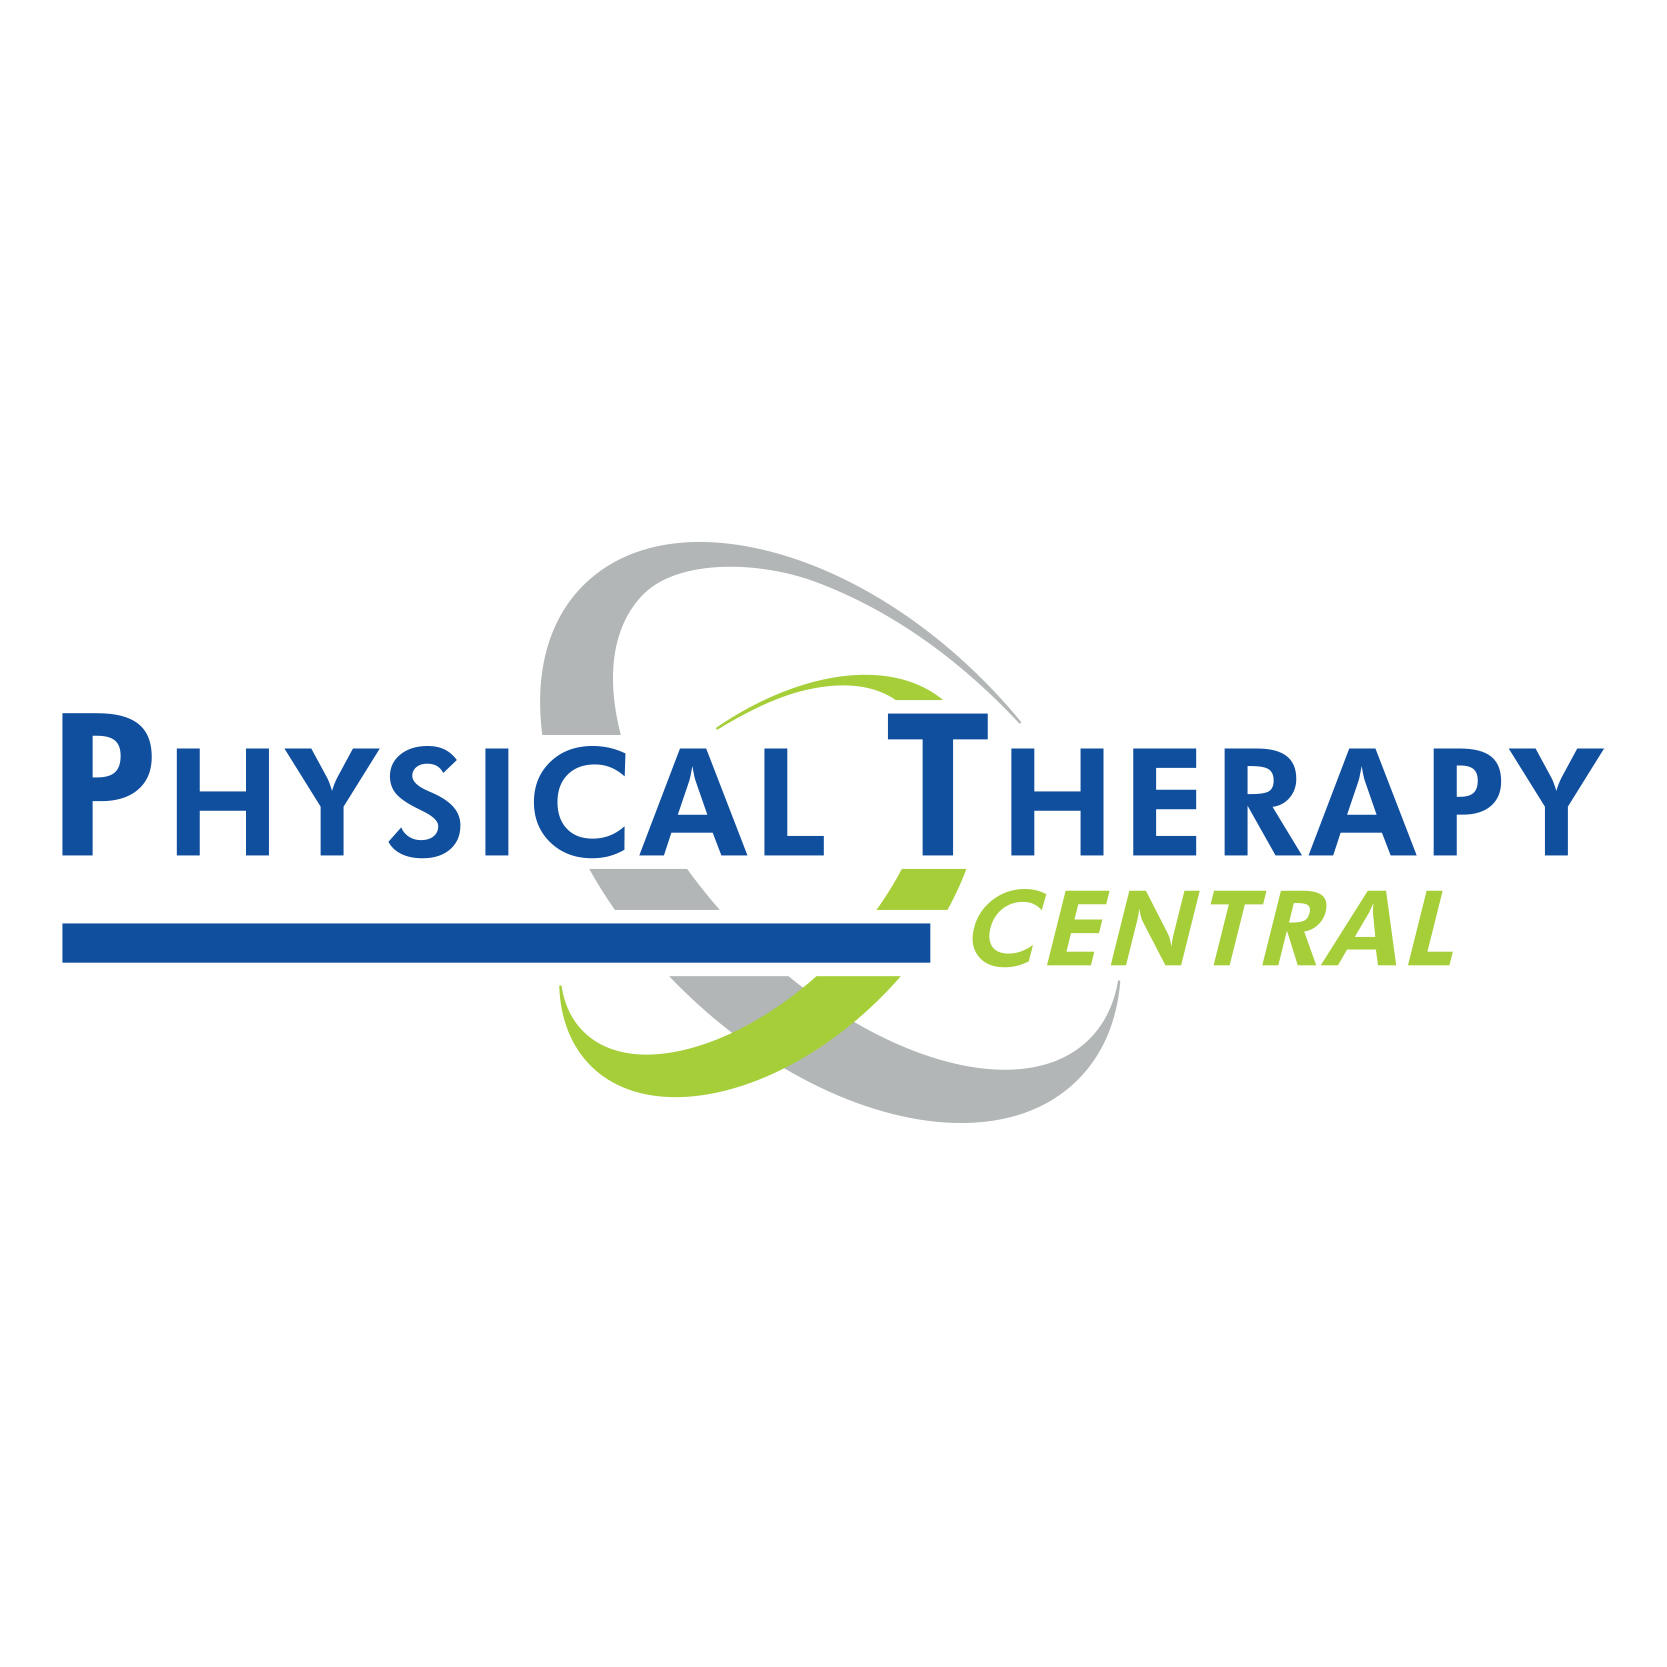 Physical Therapy Central - Oklahoma City, OK - Physical Therapy & Rehab